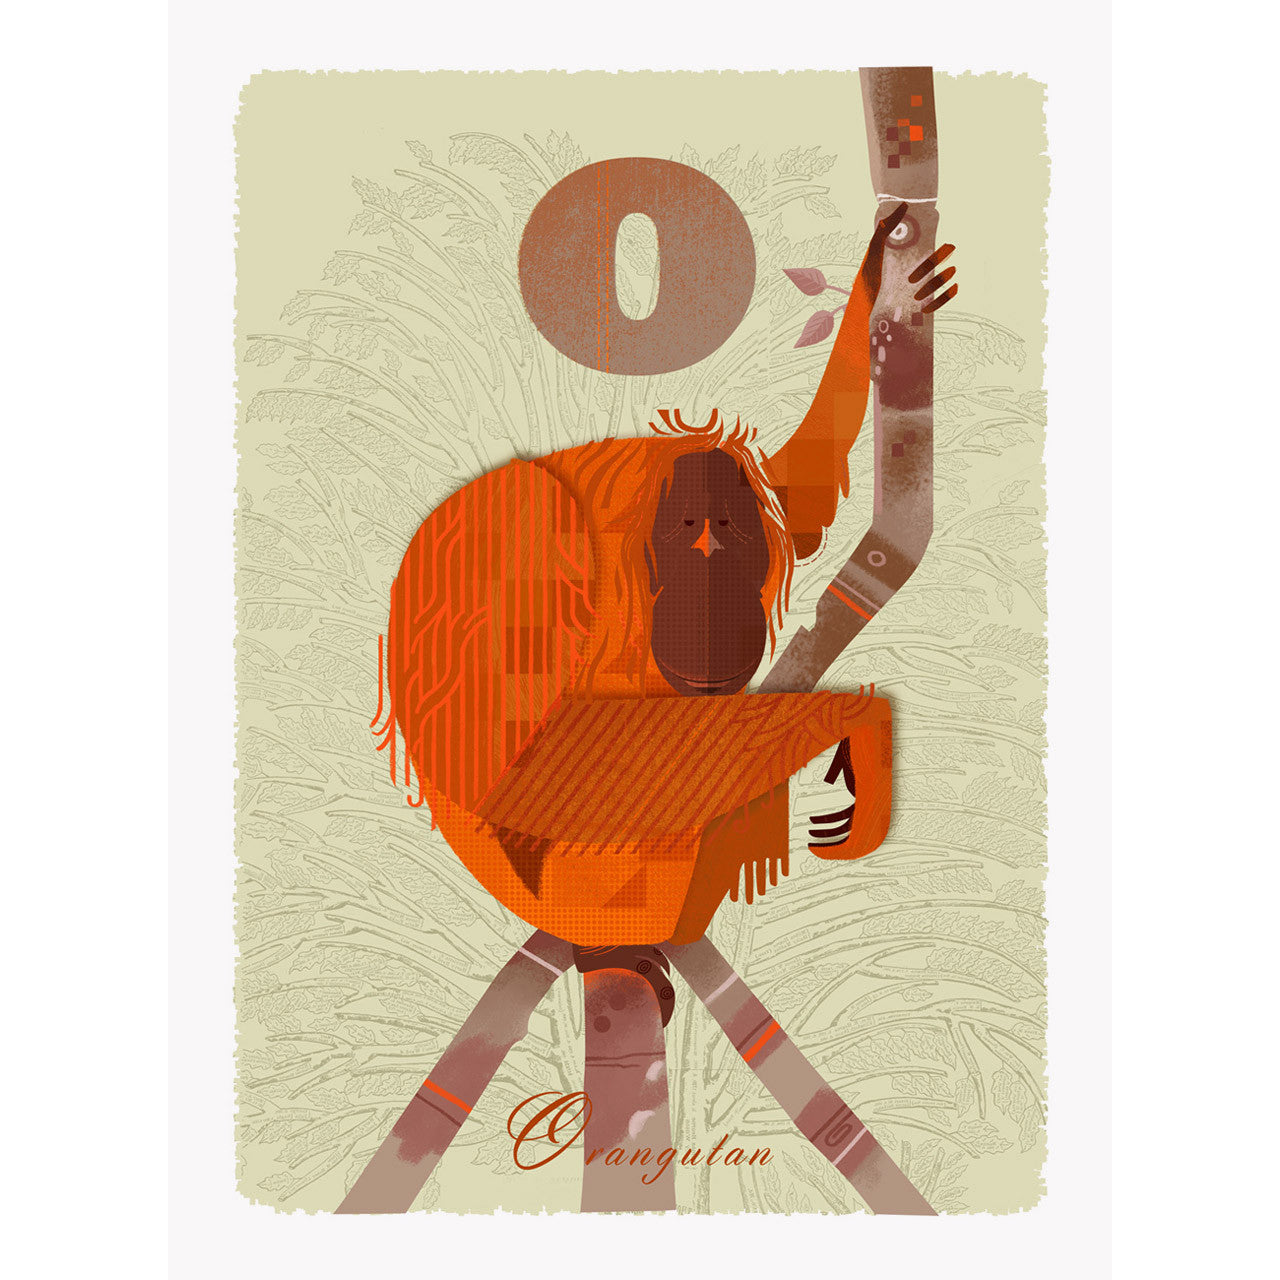 Orangutan print by Graham Carter